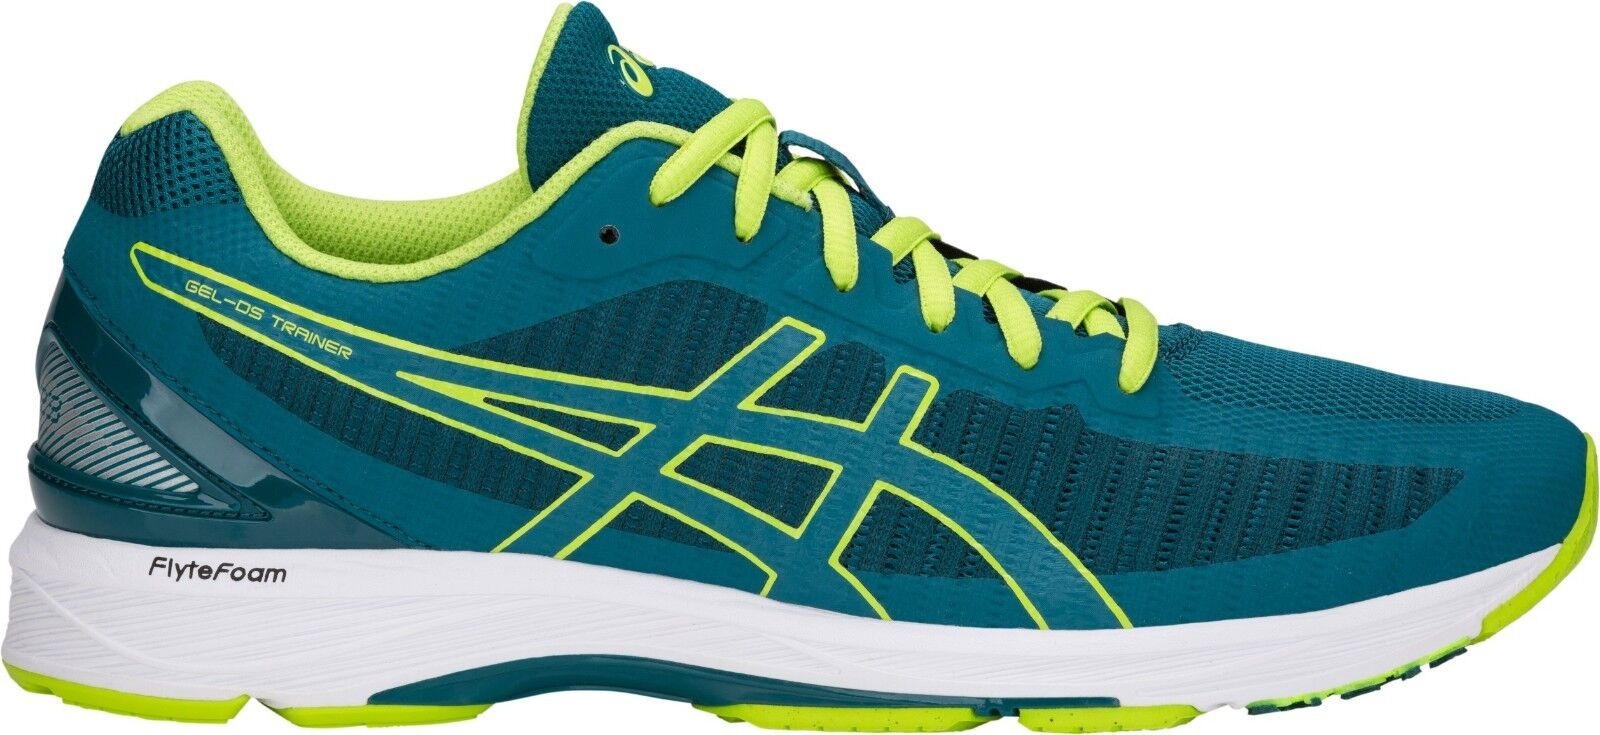 LATEST RELEASE Asics Gel DS Trainer 23 Mens Running schuhe (D) (400)